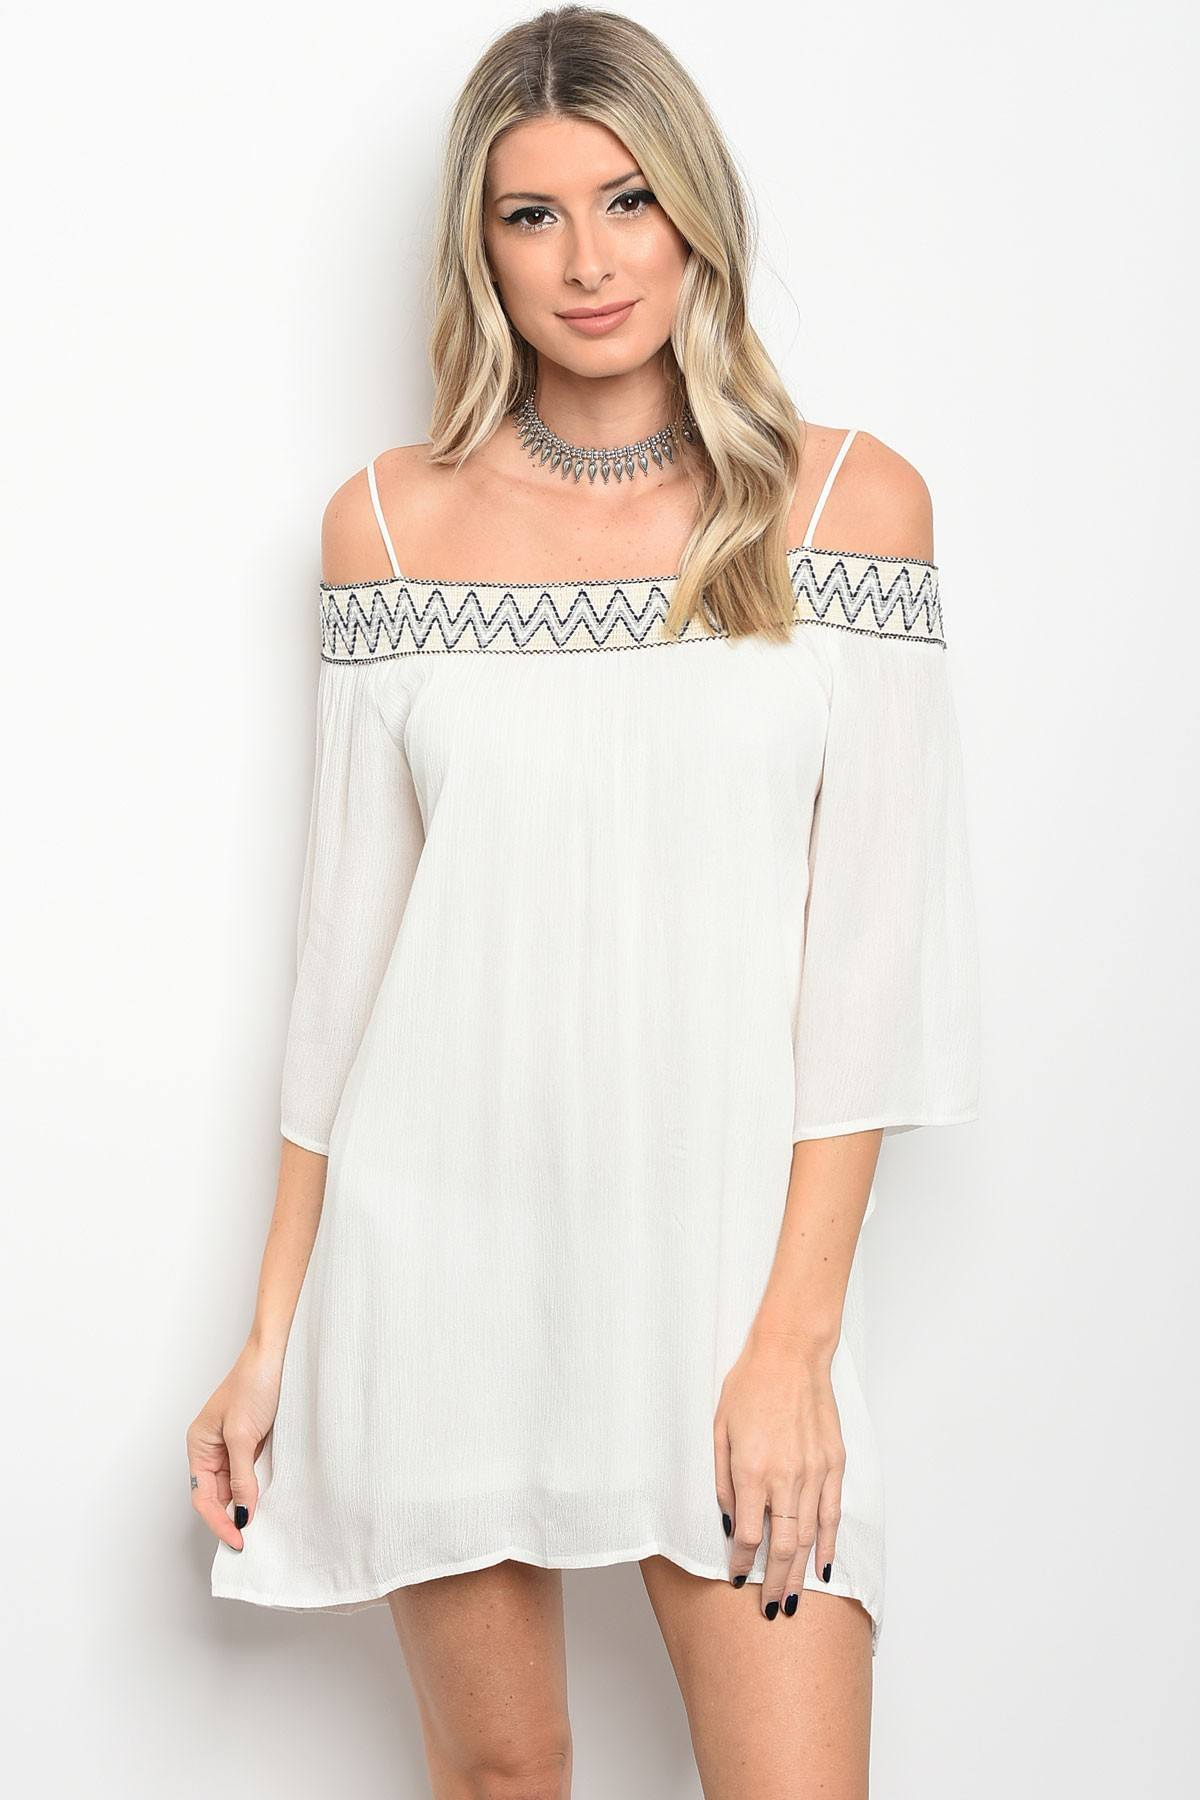 Ladies fashion 3/4 sleeve off the shoulder skater dress that features embroidered details-S-MY UPSCALE STORE